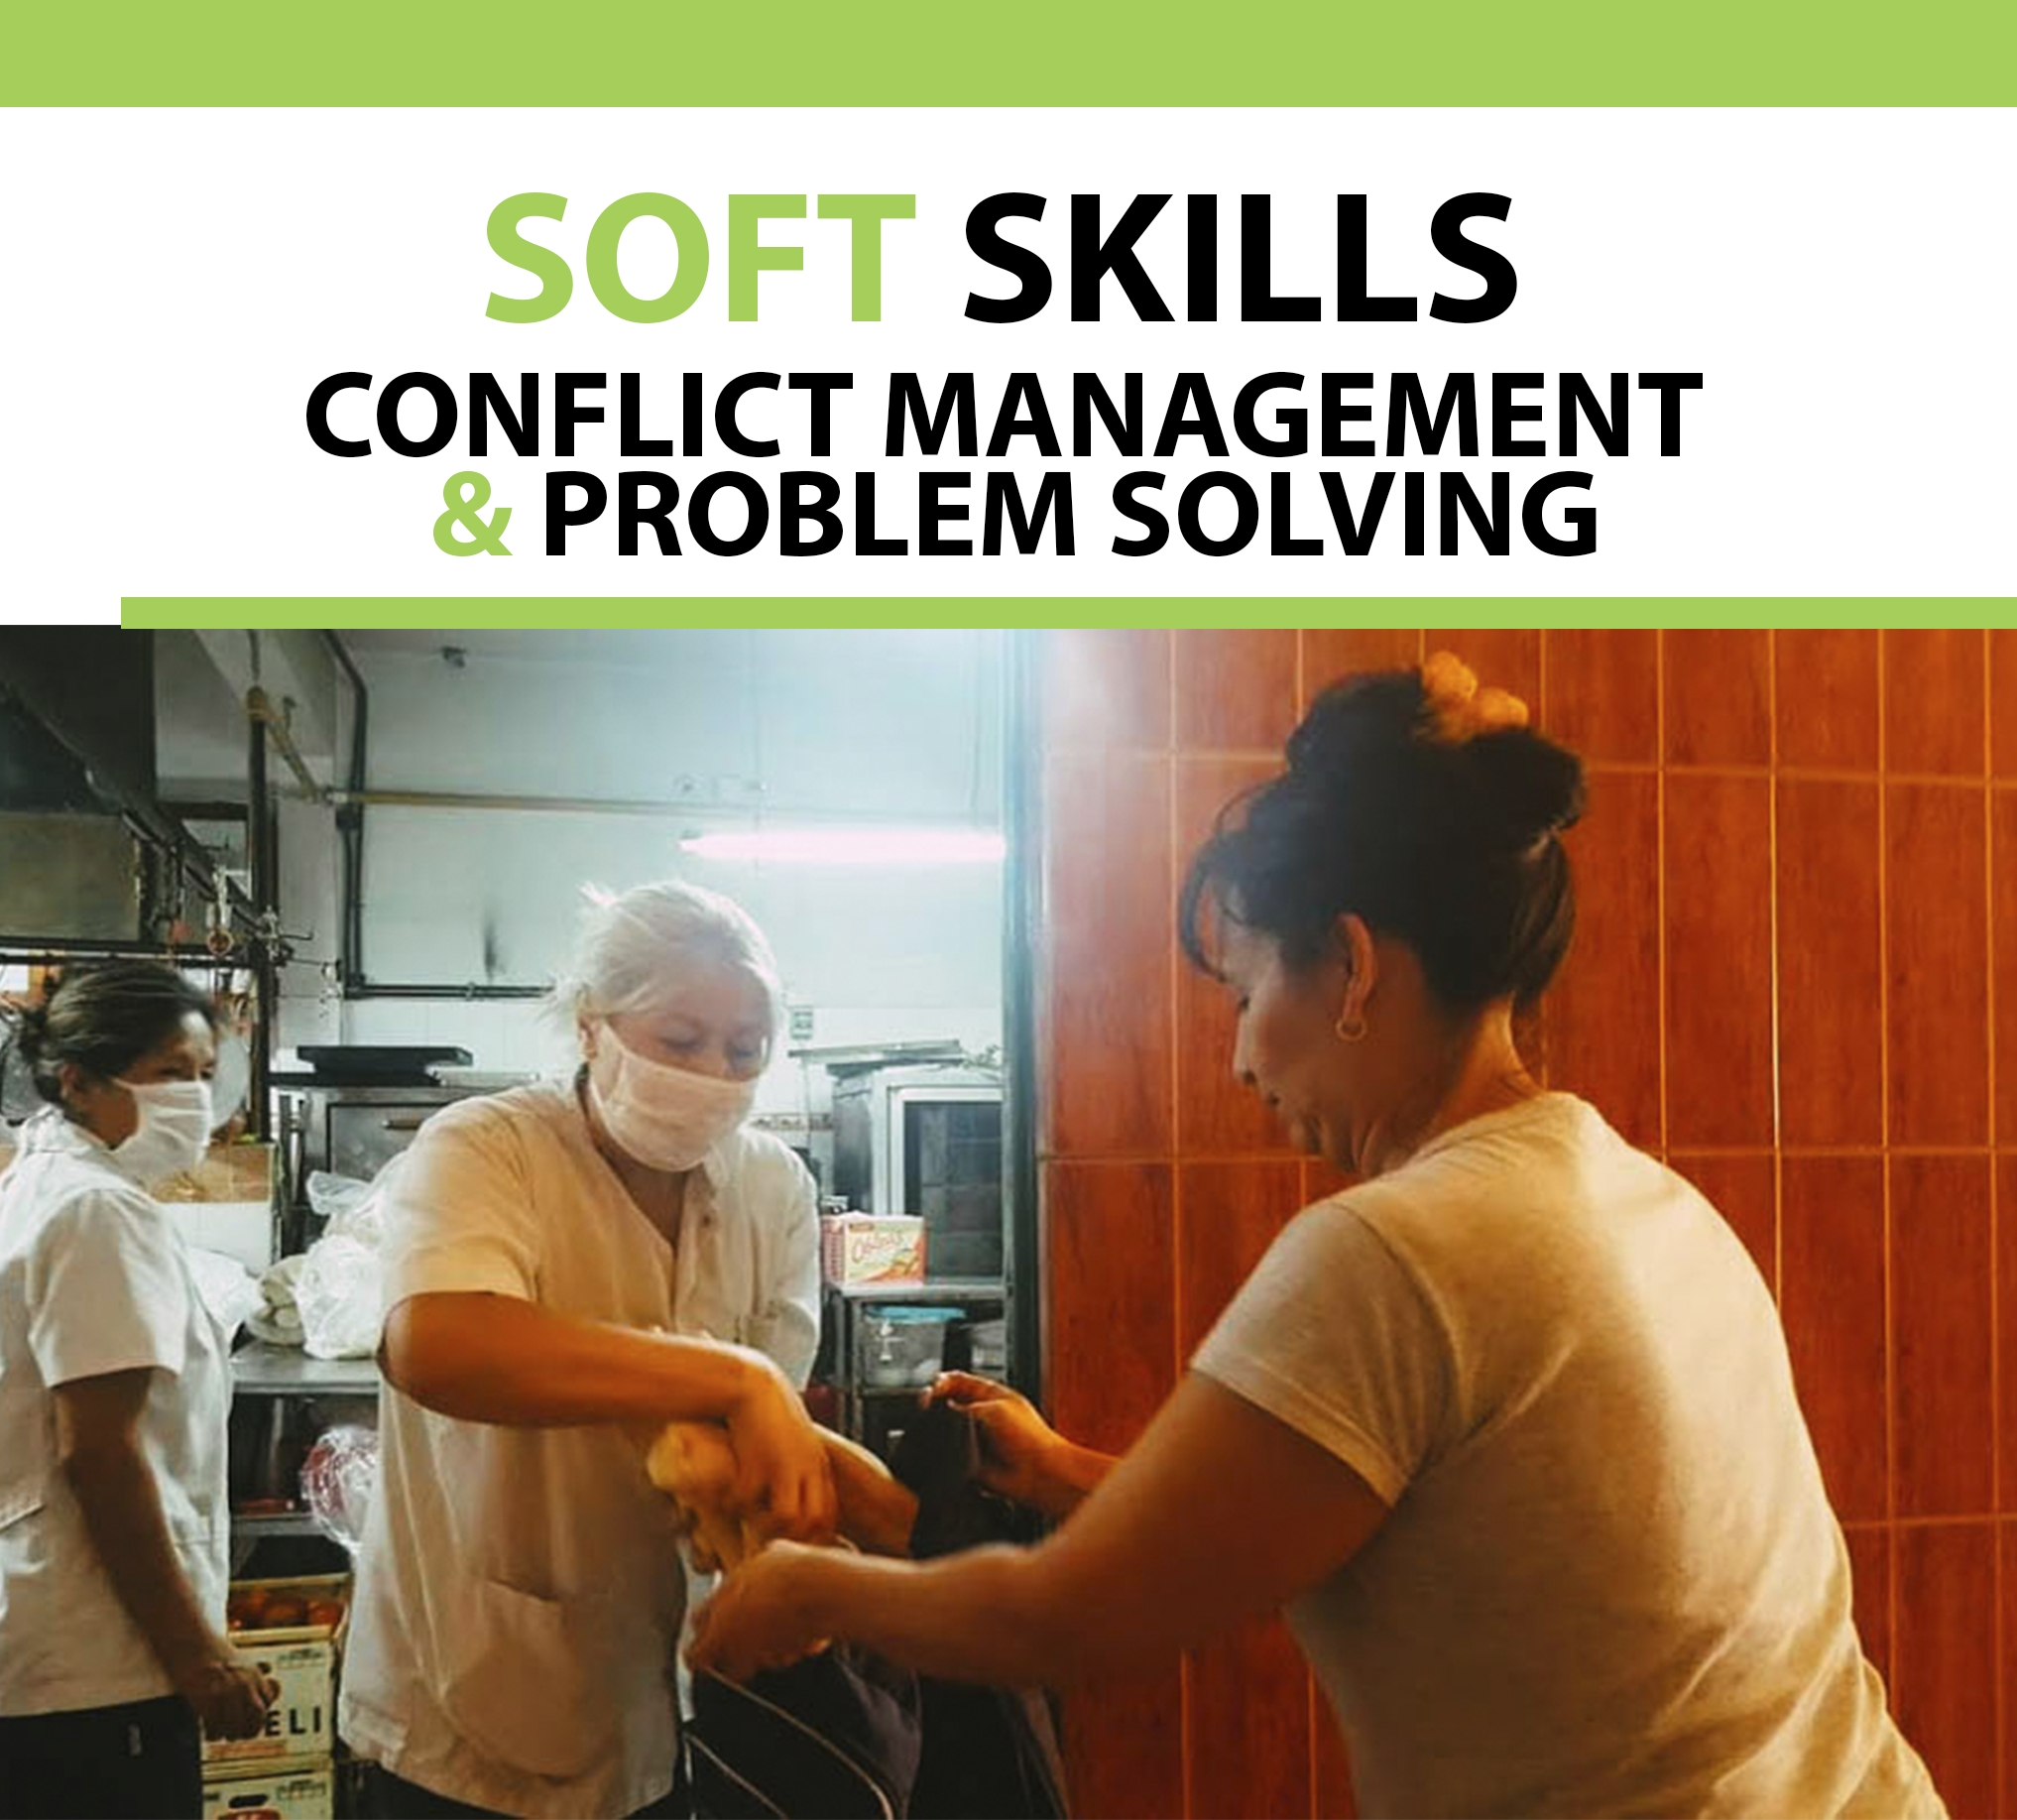 Let's talk about soft skills: Conflict management and problem solving